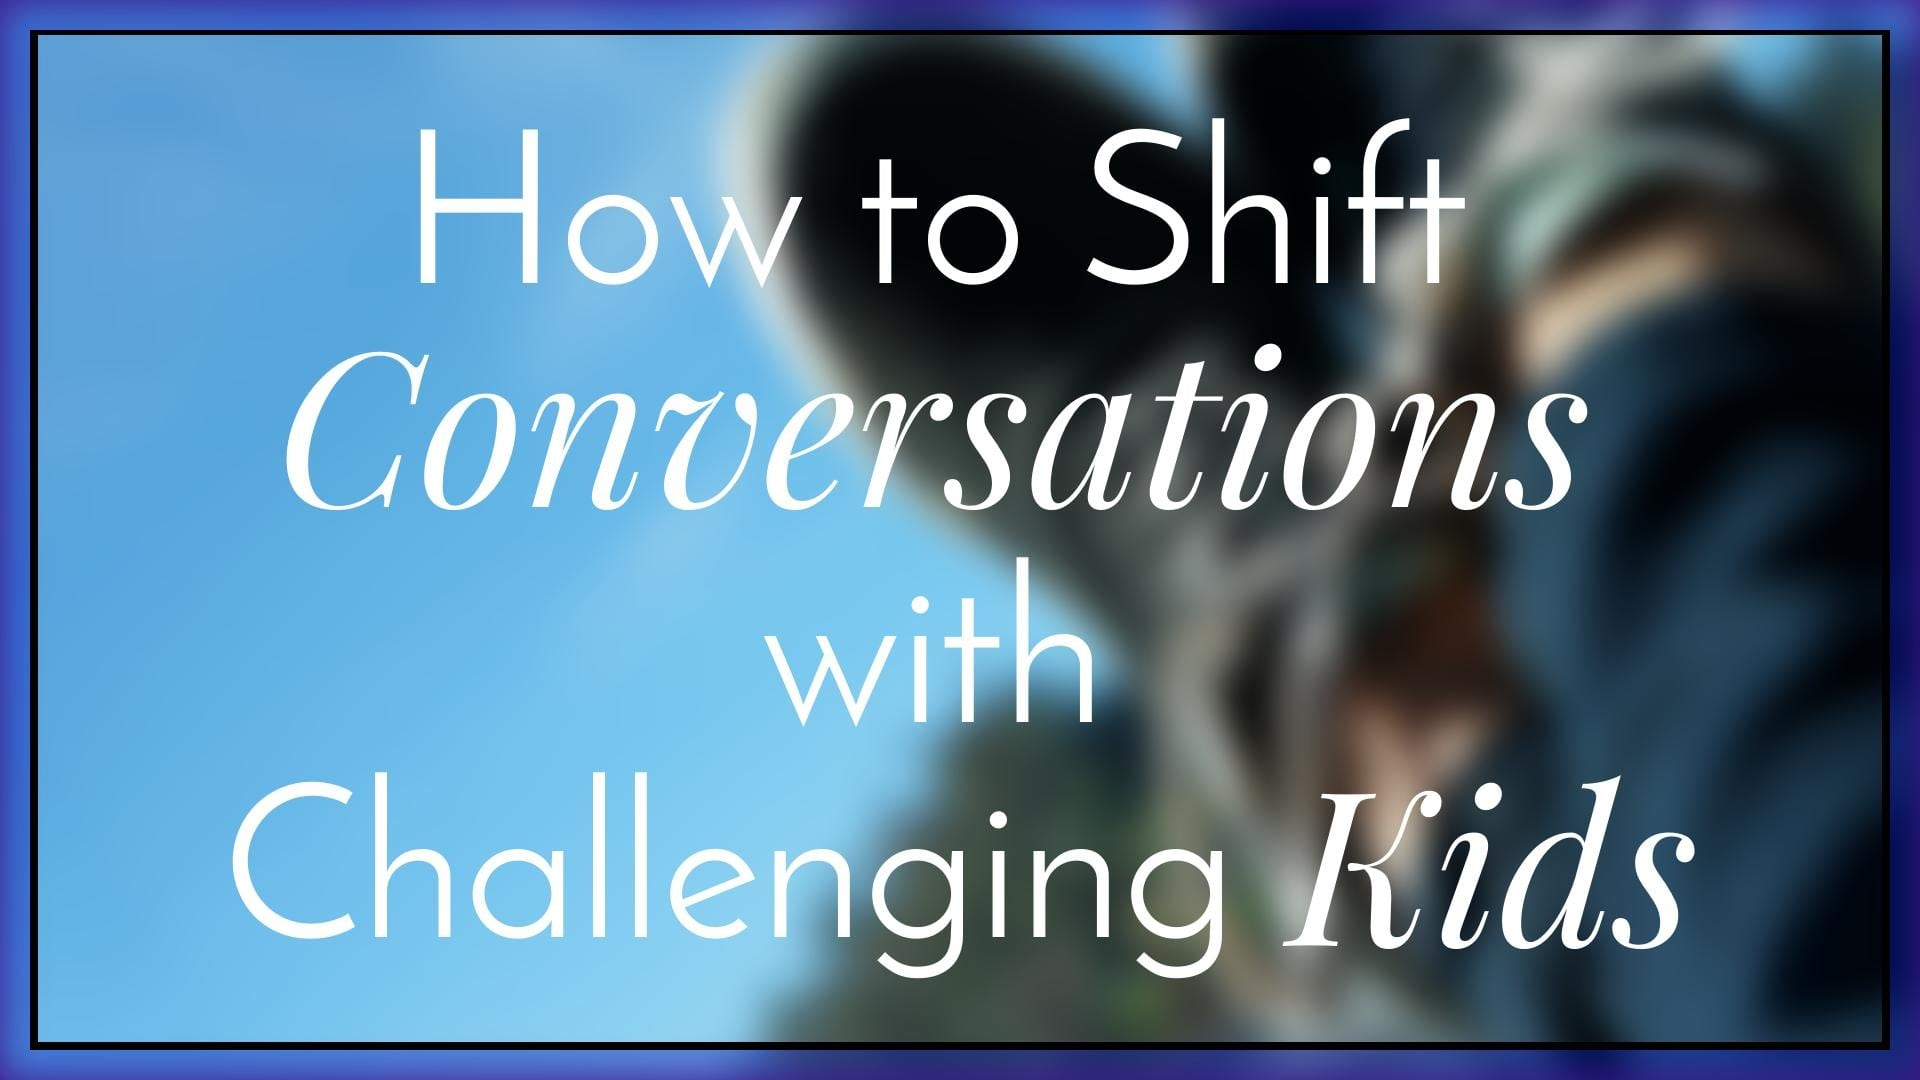 How to Shift Conversations with Challenging Kids